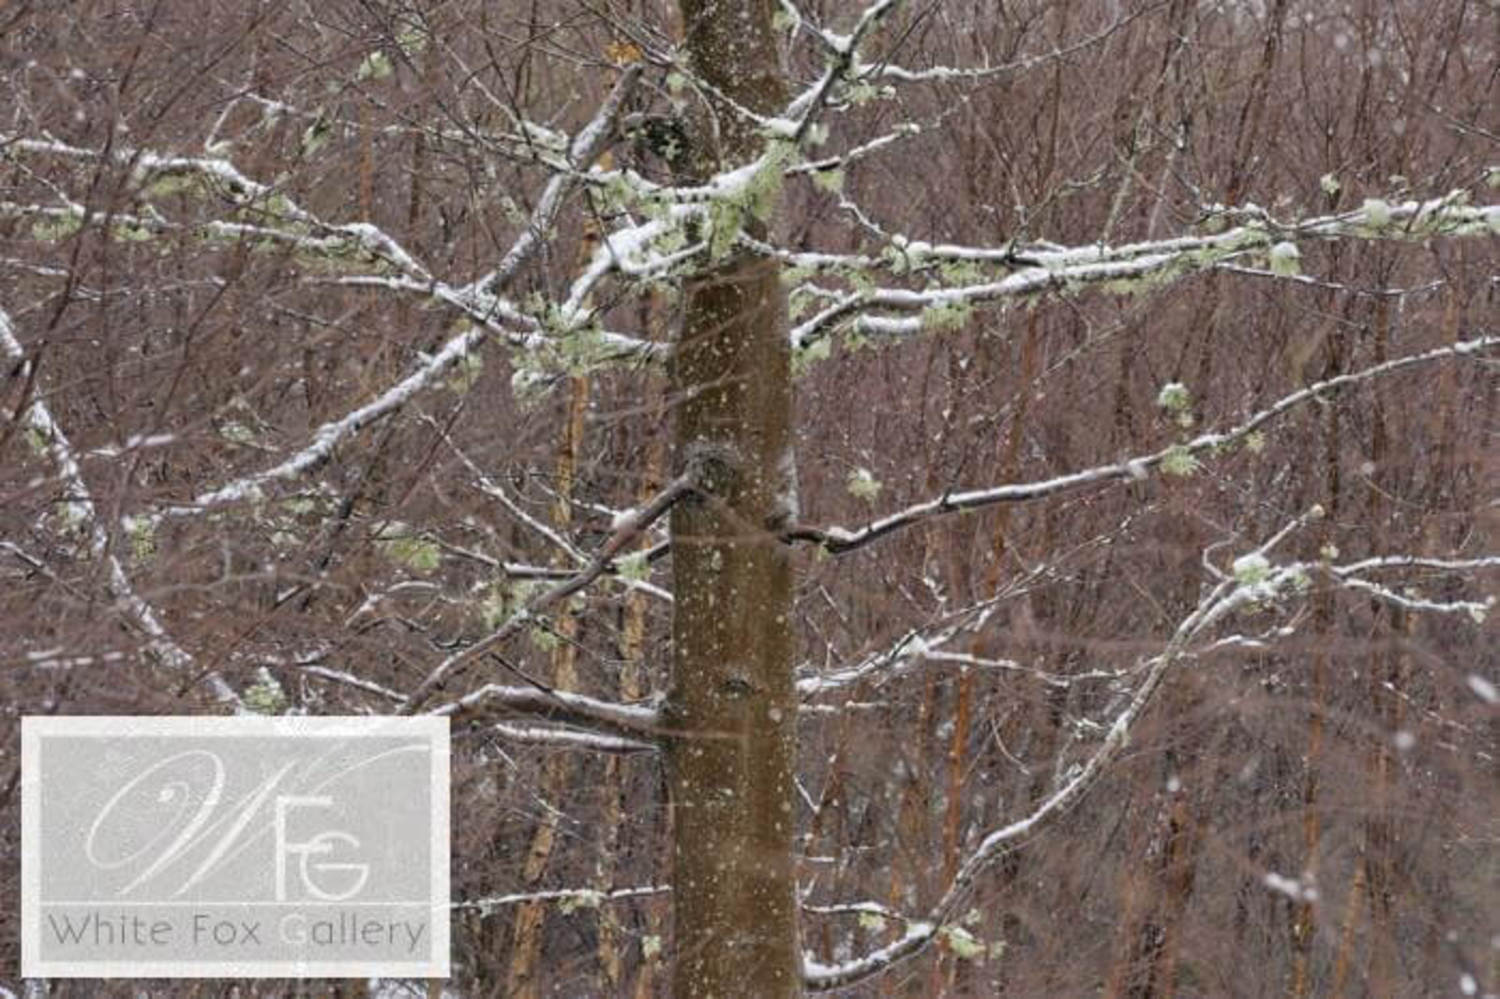 Snow on the Sycamore Boughs